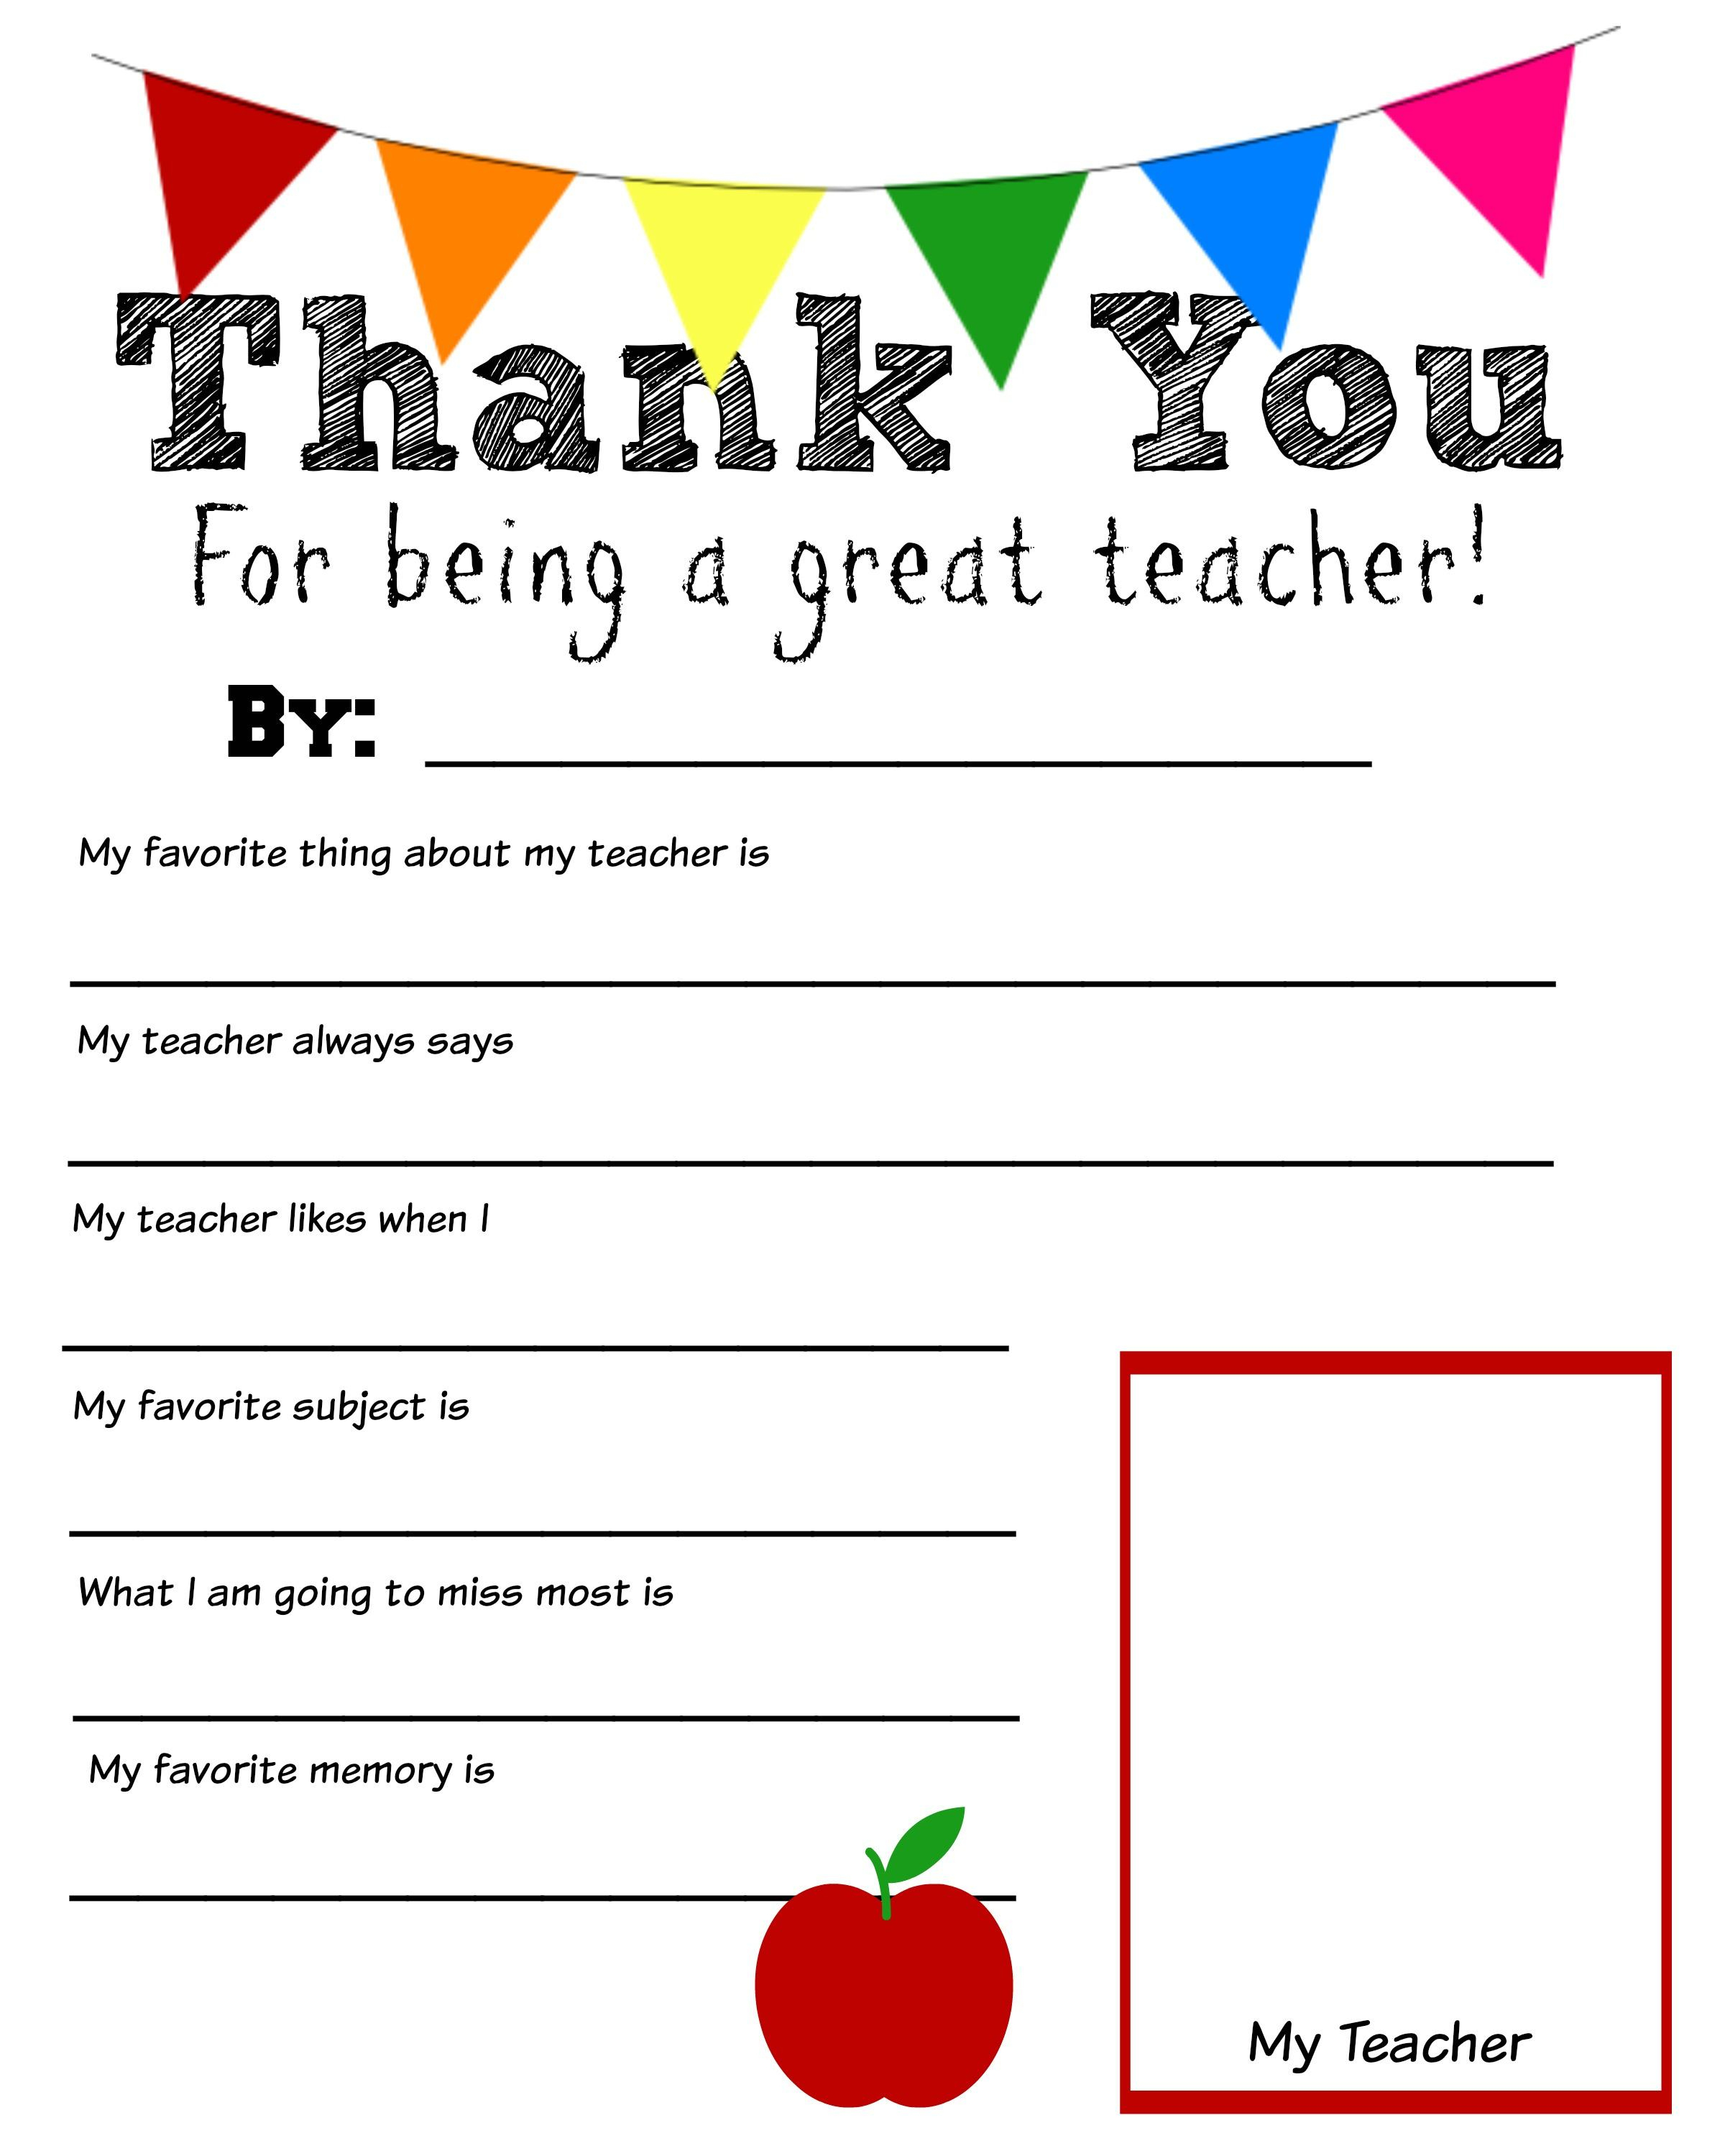 Free Printable Certificate Templates For Teachers Ideas Of Free - Free Printable Certificates For Teachers